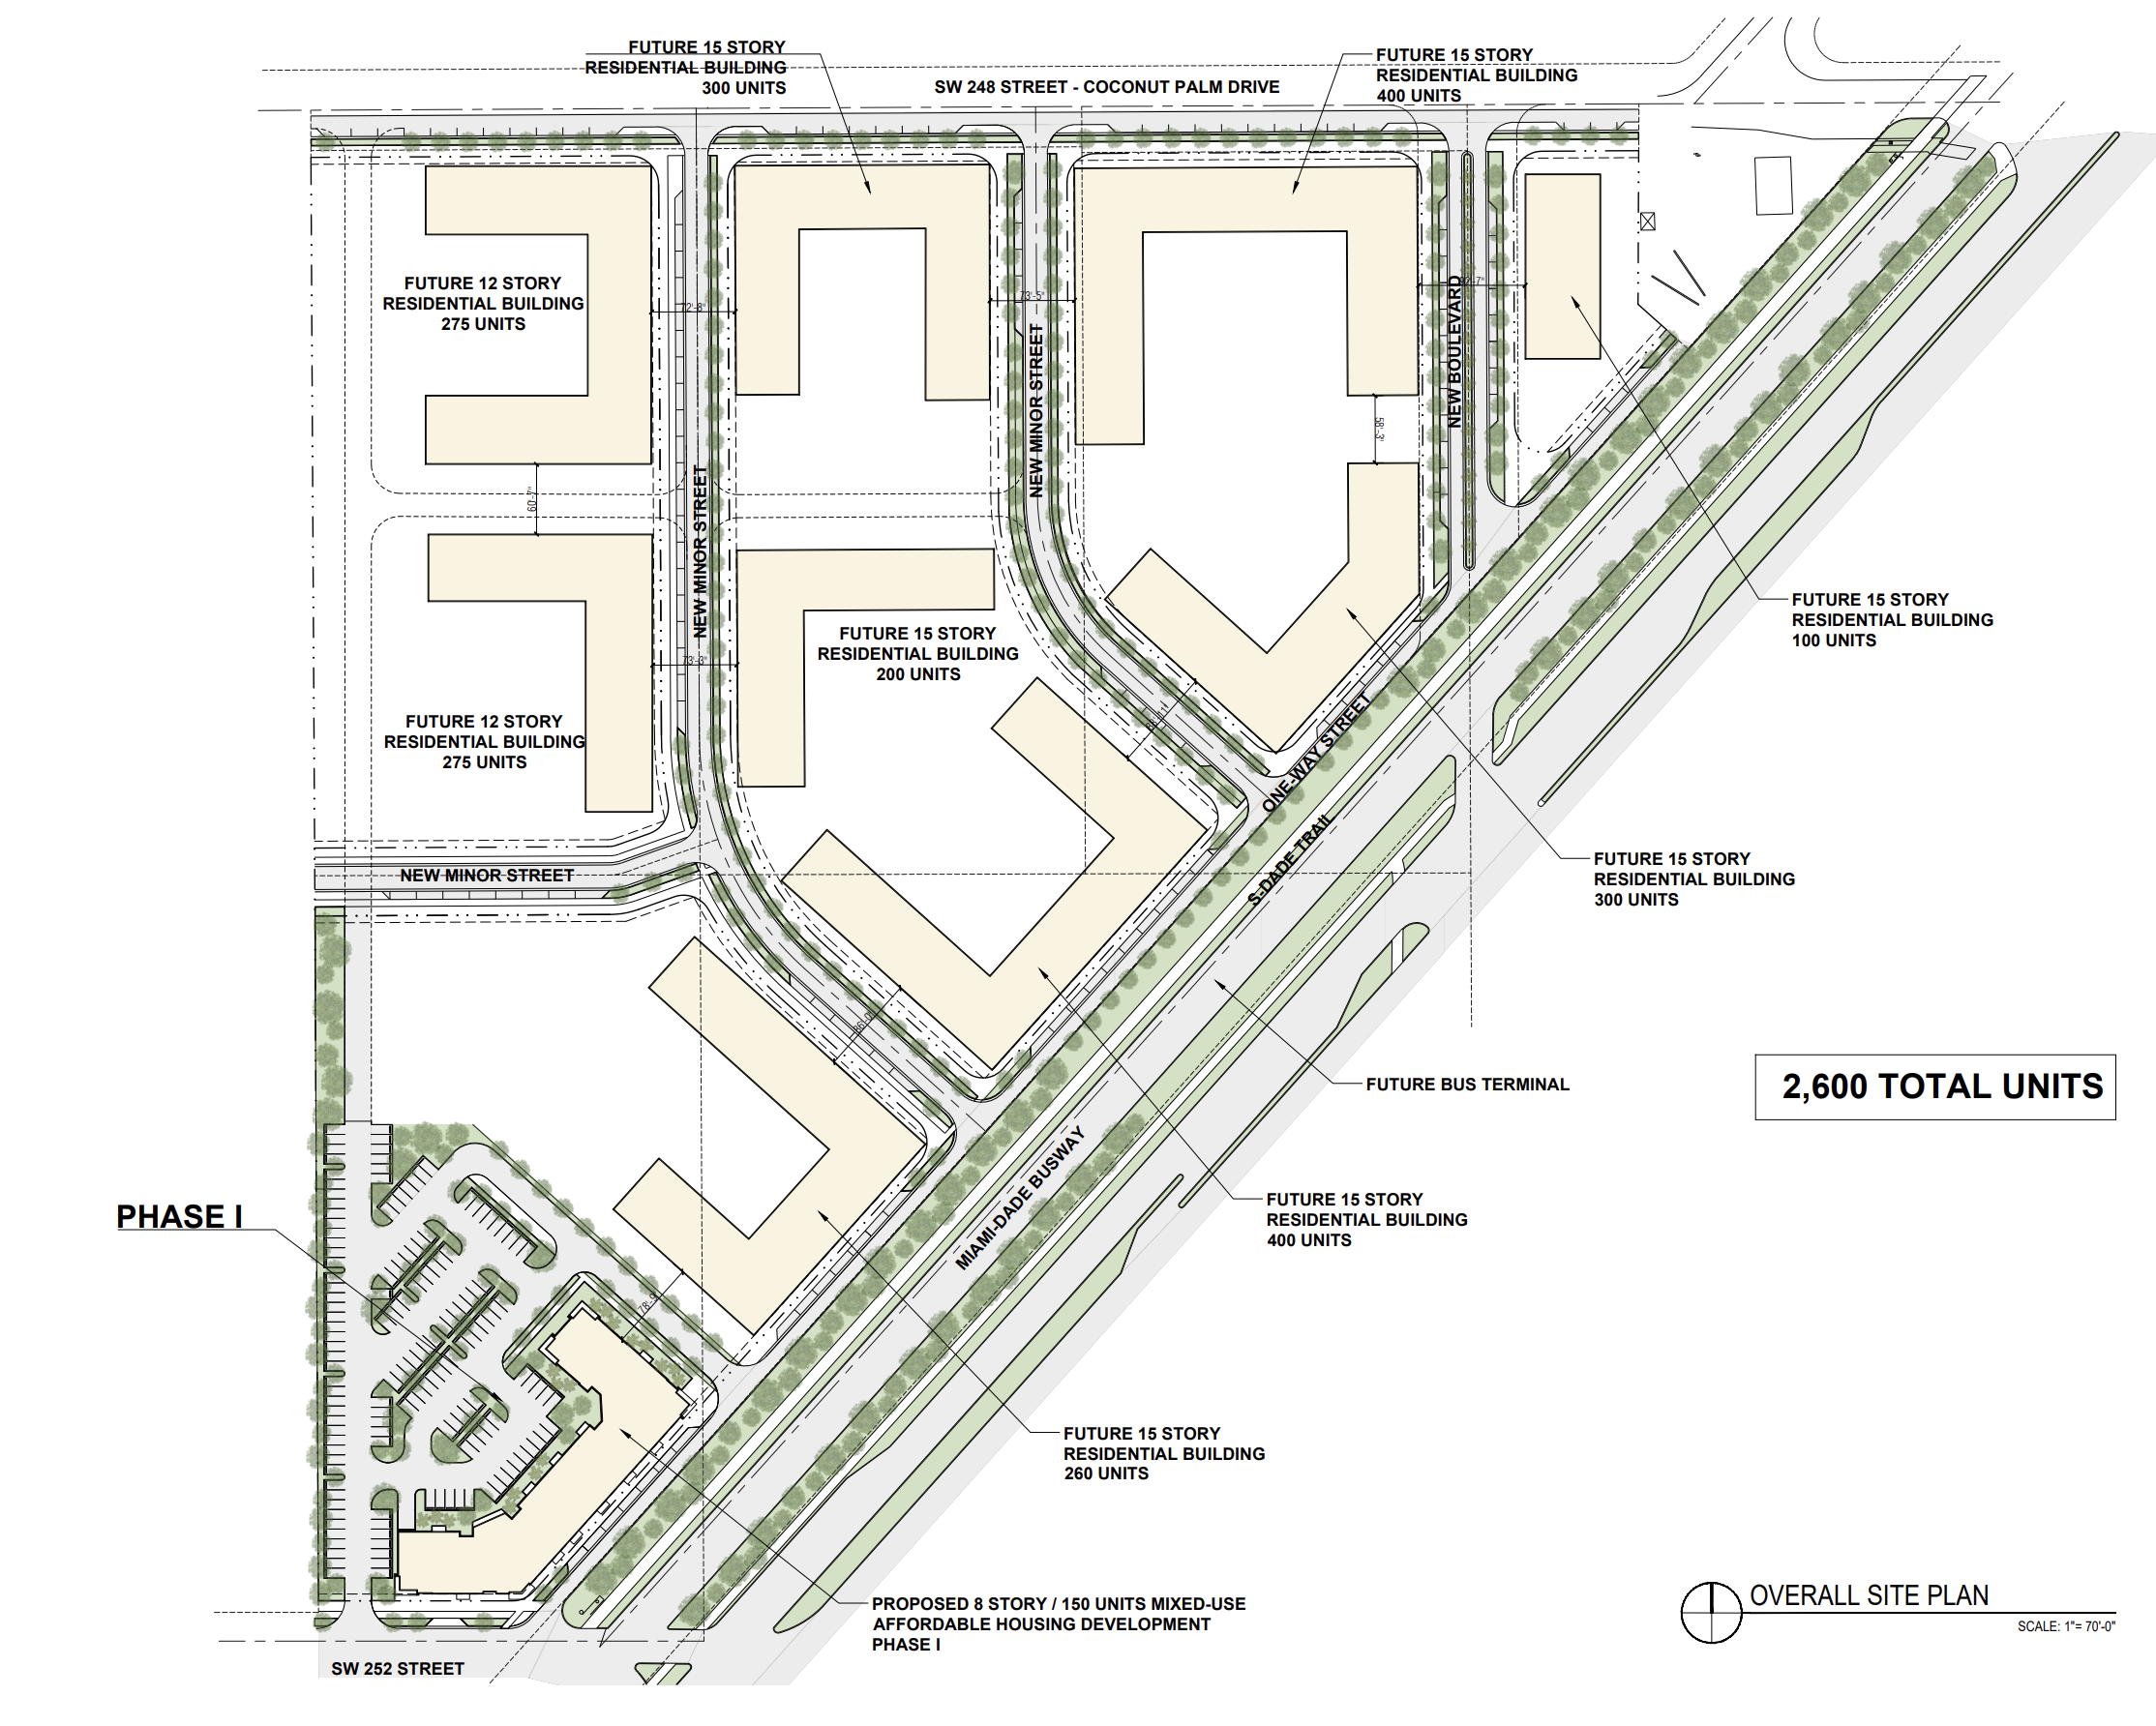 Overall Site Plan. Designed by Behar Font & Partners.